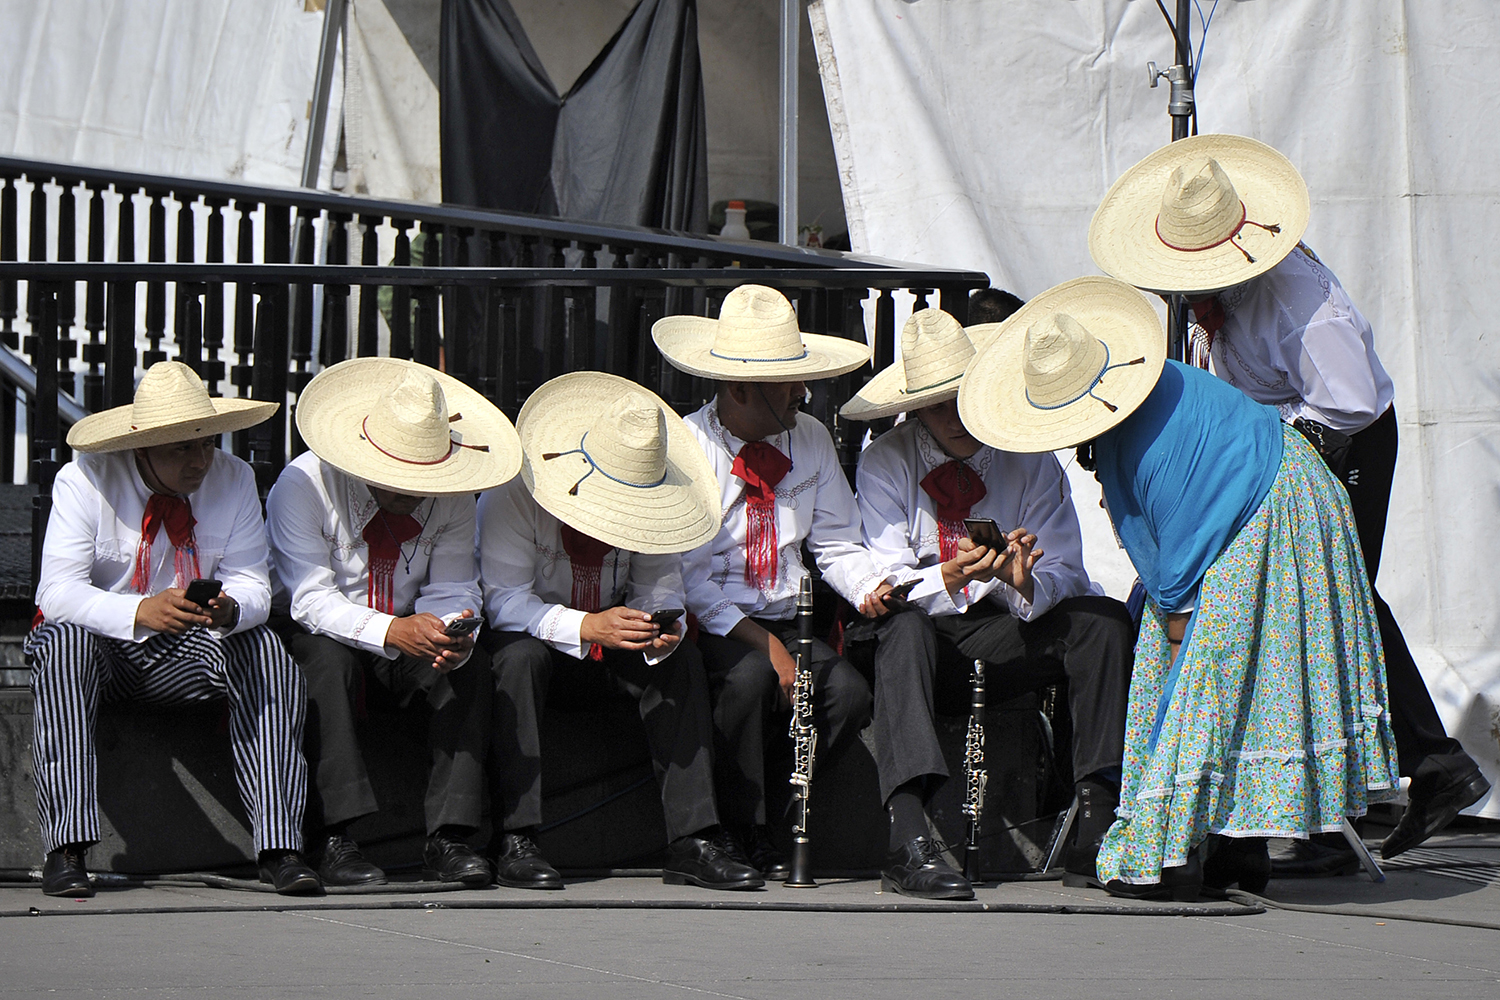 People wait to perform in a parade commemorating the 109th anniversary of the Mexican Revolution in Mexico City on Nov. 20. CLAUDIO CRUZ/AFP via Getty Images